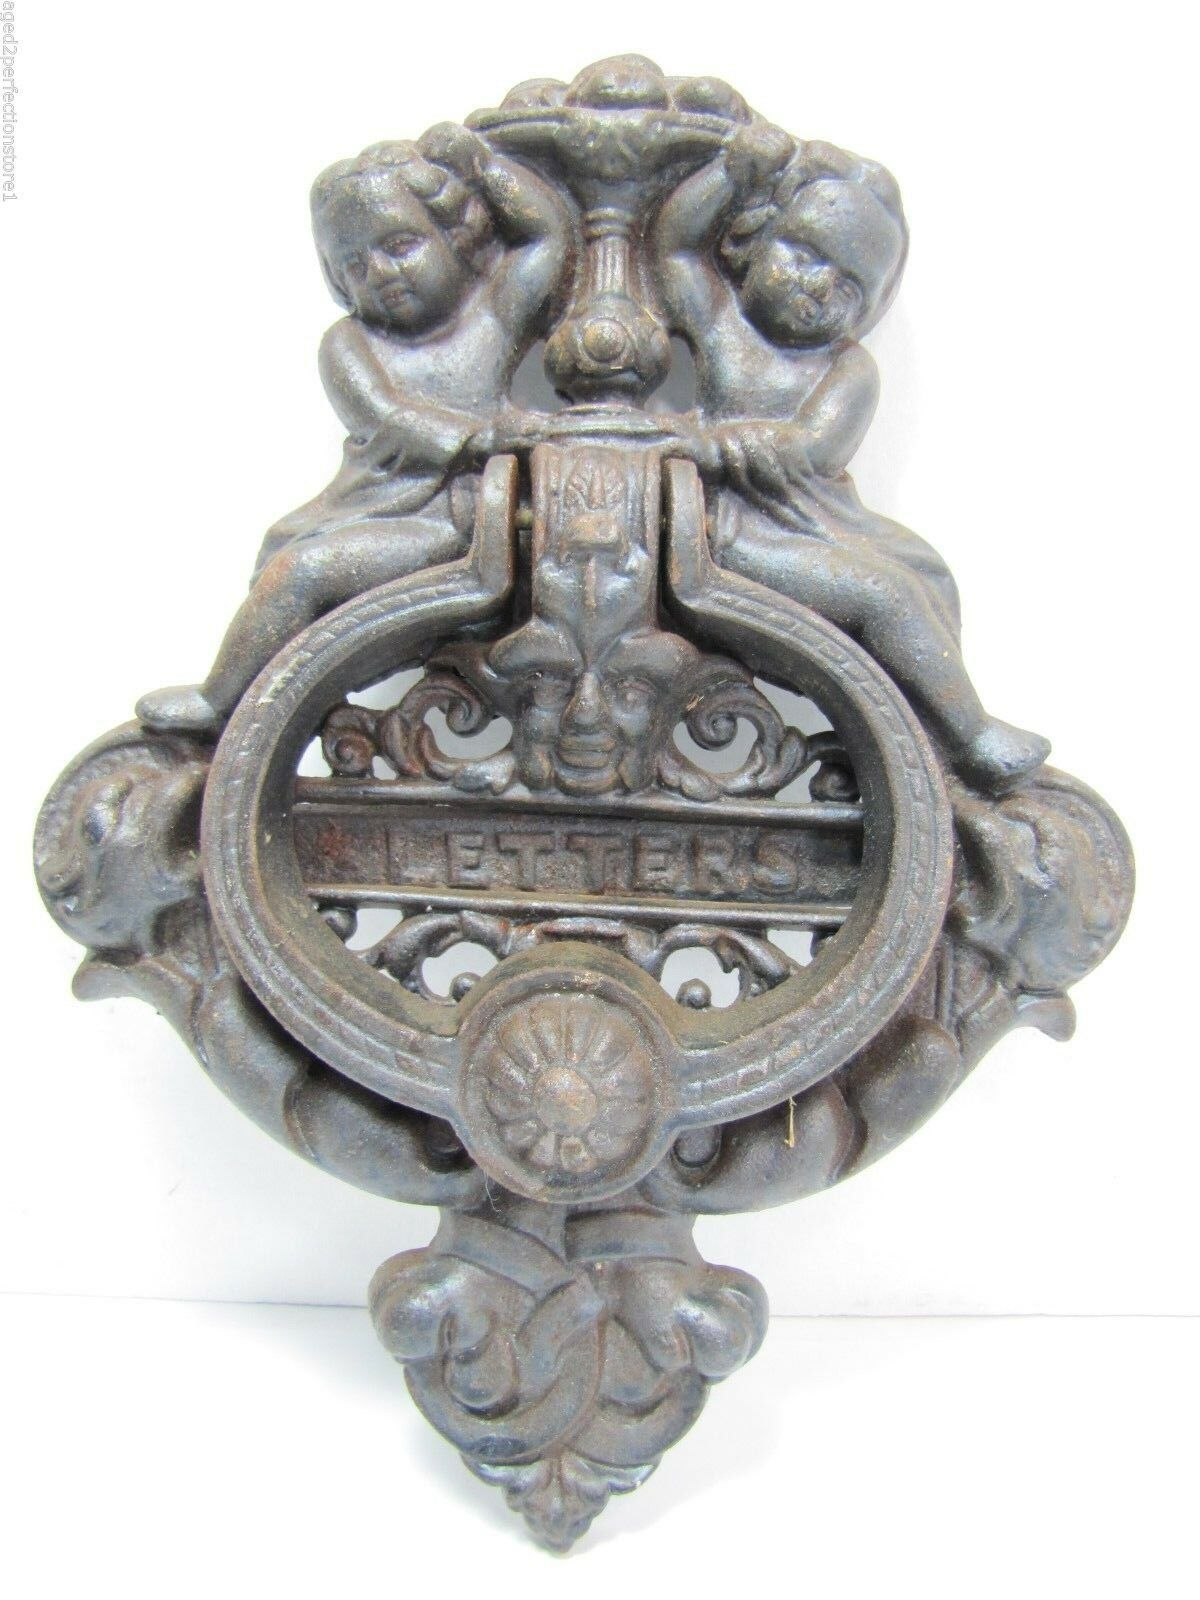 Vintage Cast Iron Figural Door Knocker Letters Mail Slot lrg ornate art nouveau